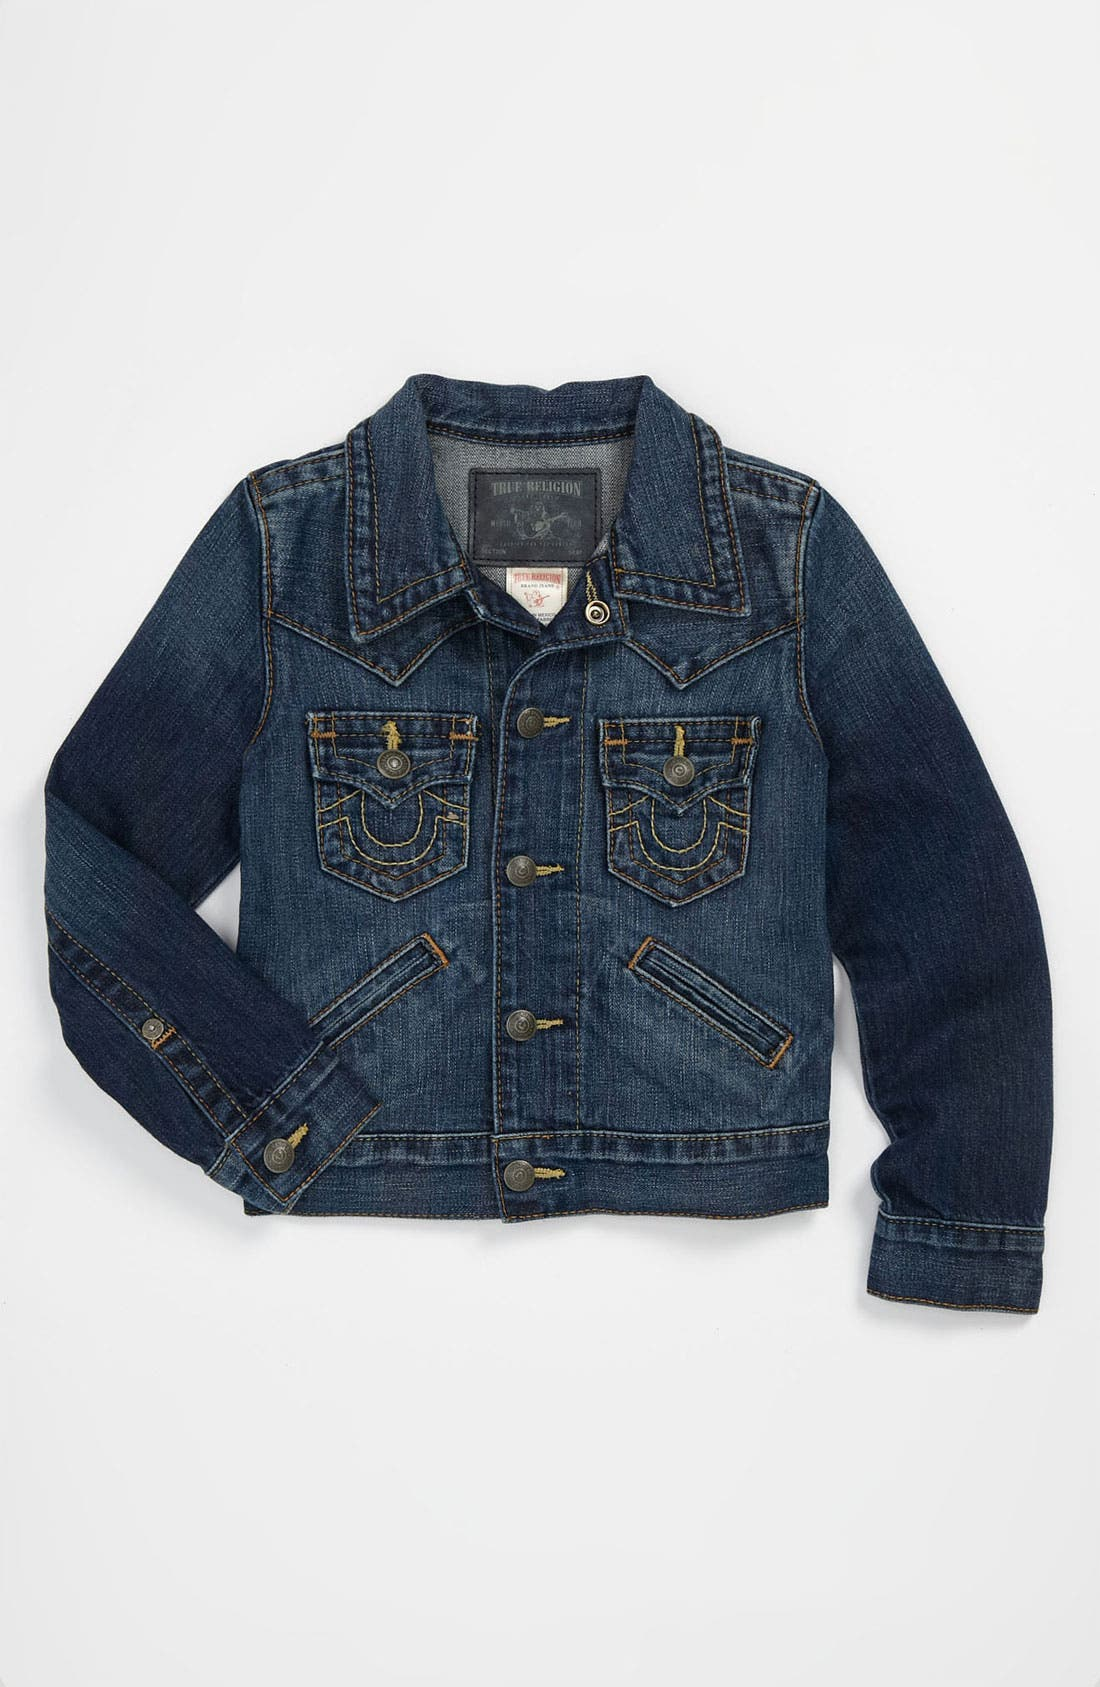 Main Image - True Religion Brand Jeans 'Johnny' Denim Jacket (Big Boys)